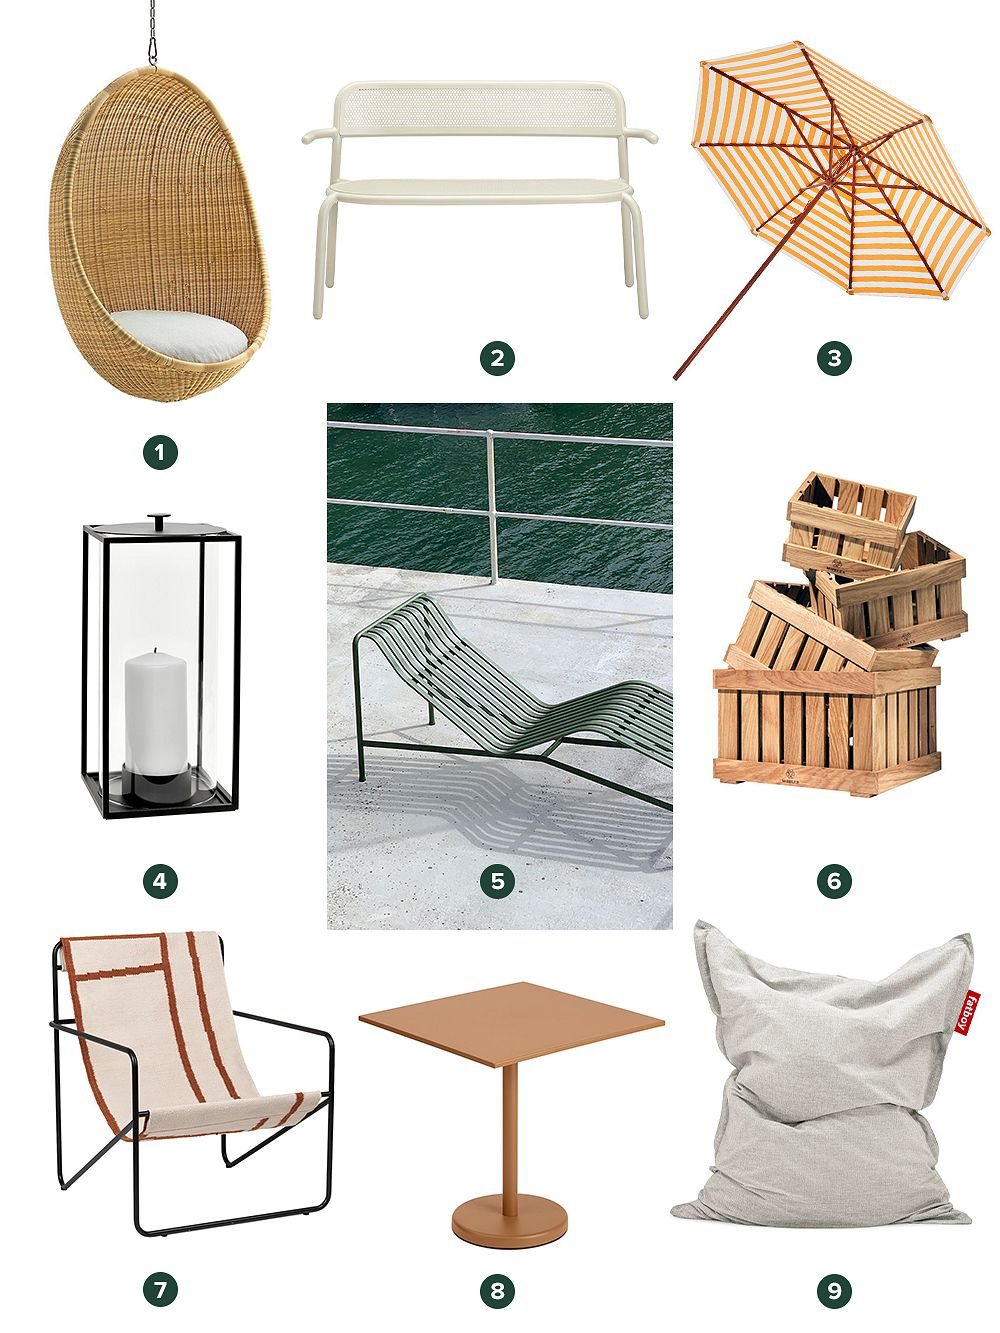 Patio & Garden products at Finnish Design Shop